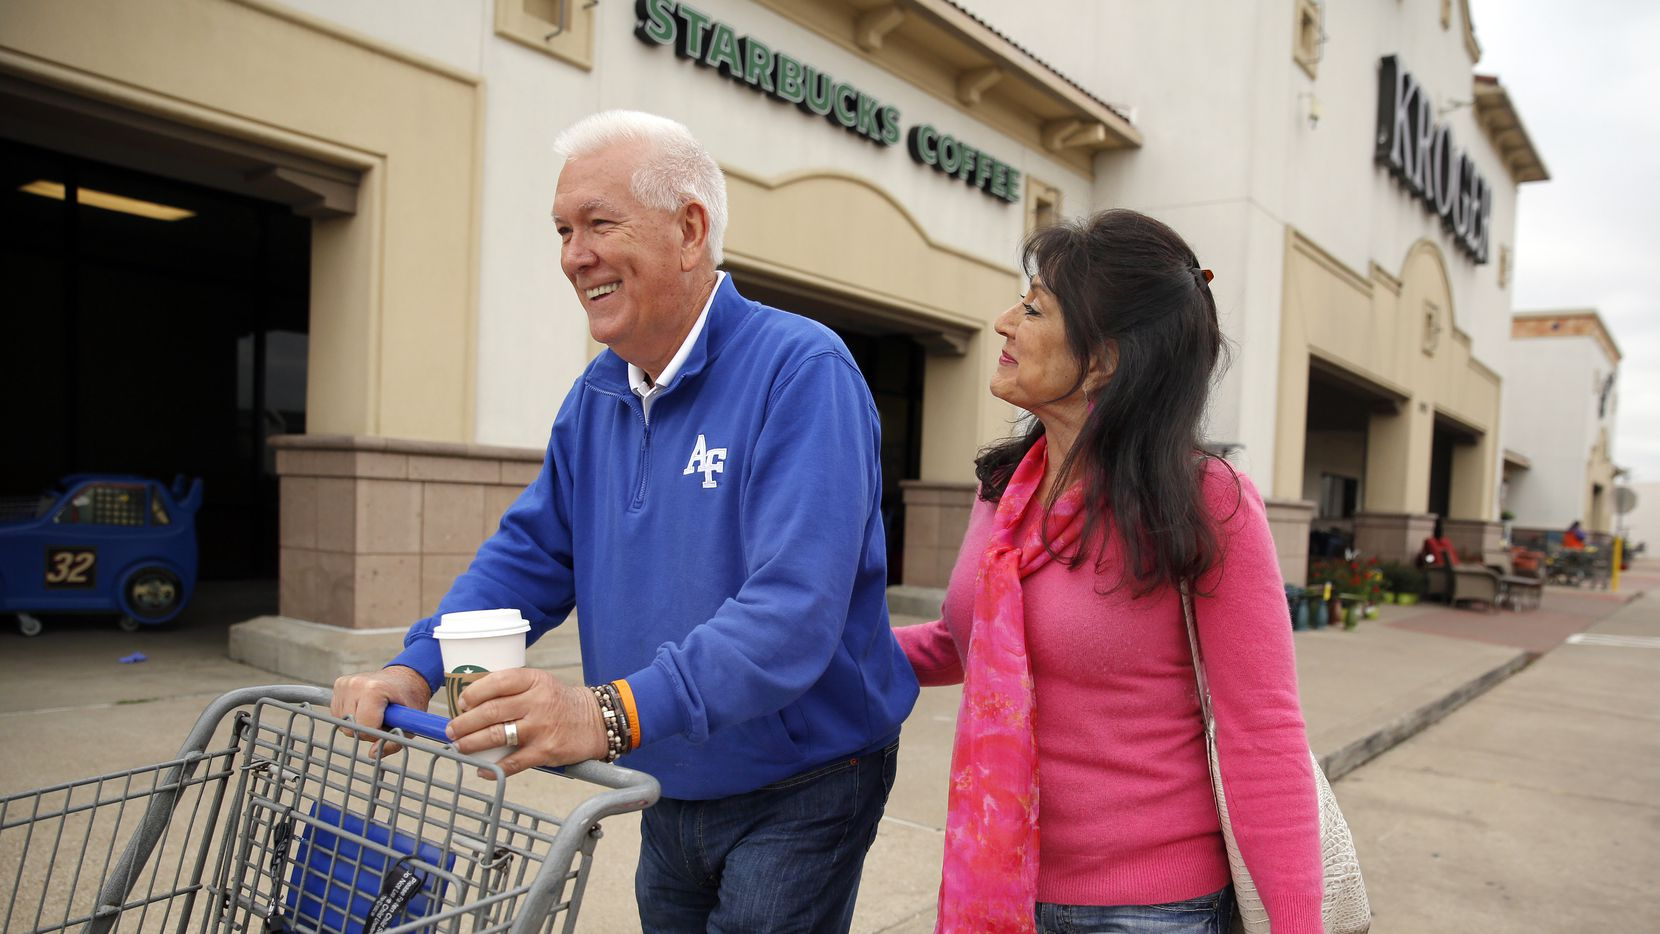 Former coach then local sportscaster and current commercial actor Eddy Clinton and his wife Anna Clinton of Plano bought a load of groceries for Kristin Tarrence in Farmers Branch, Friday, March 20, 2020. Tarrence found Clinton on Facebook and reached out for assistance during the coronavirus outbreak.